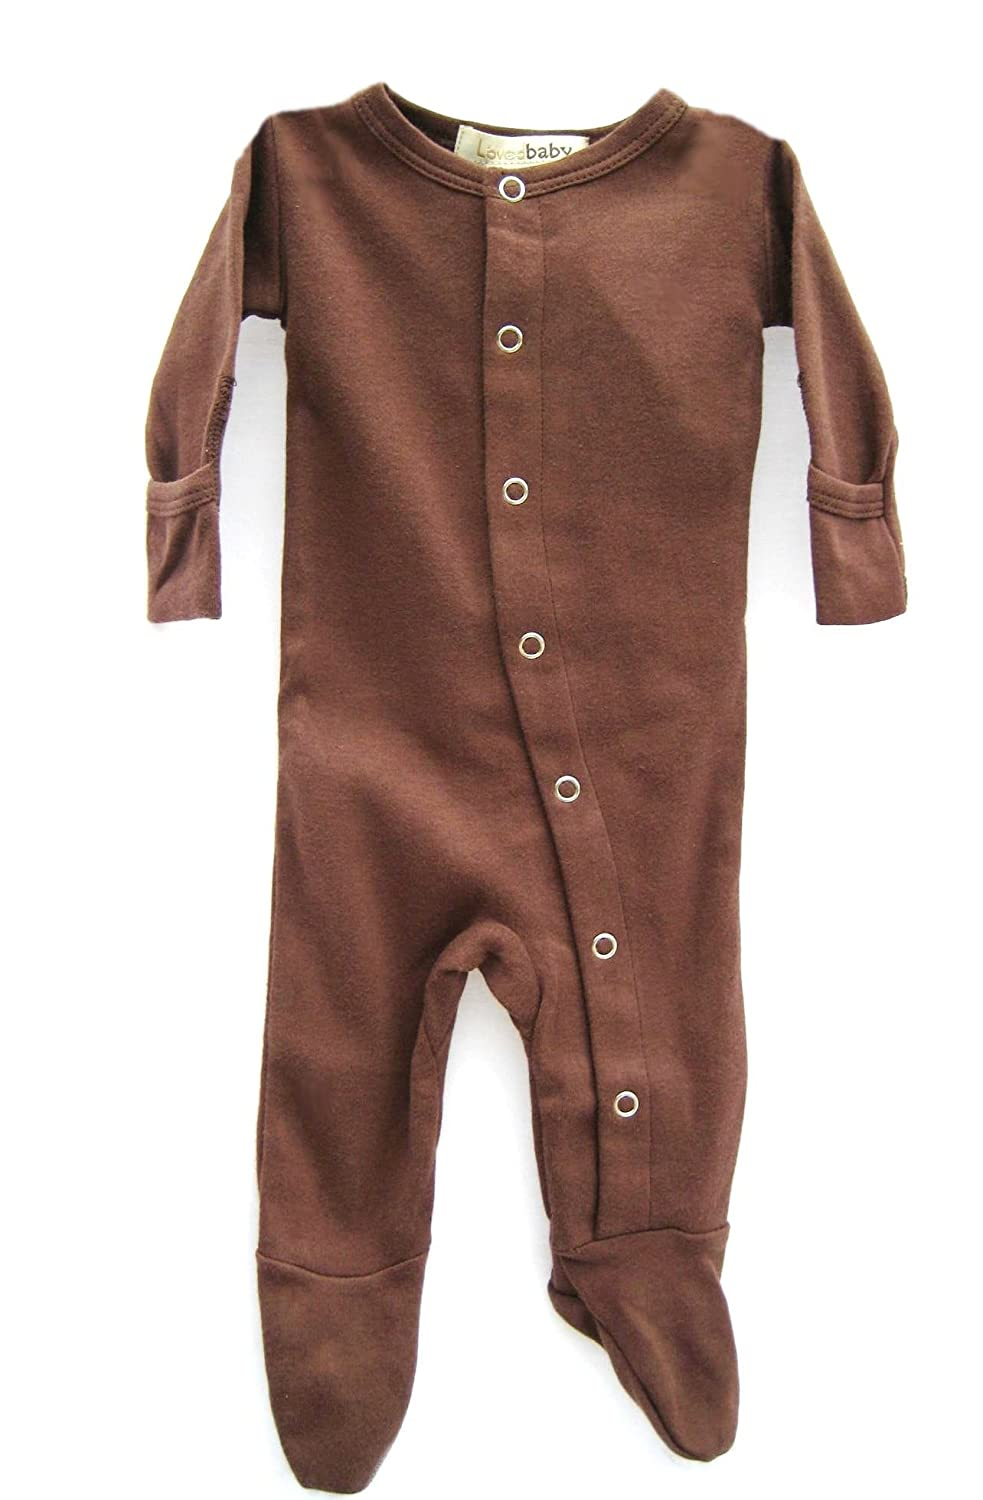 L'ovedbaby Gl'oved-Sleever Overall